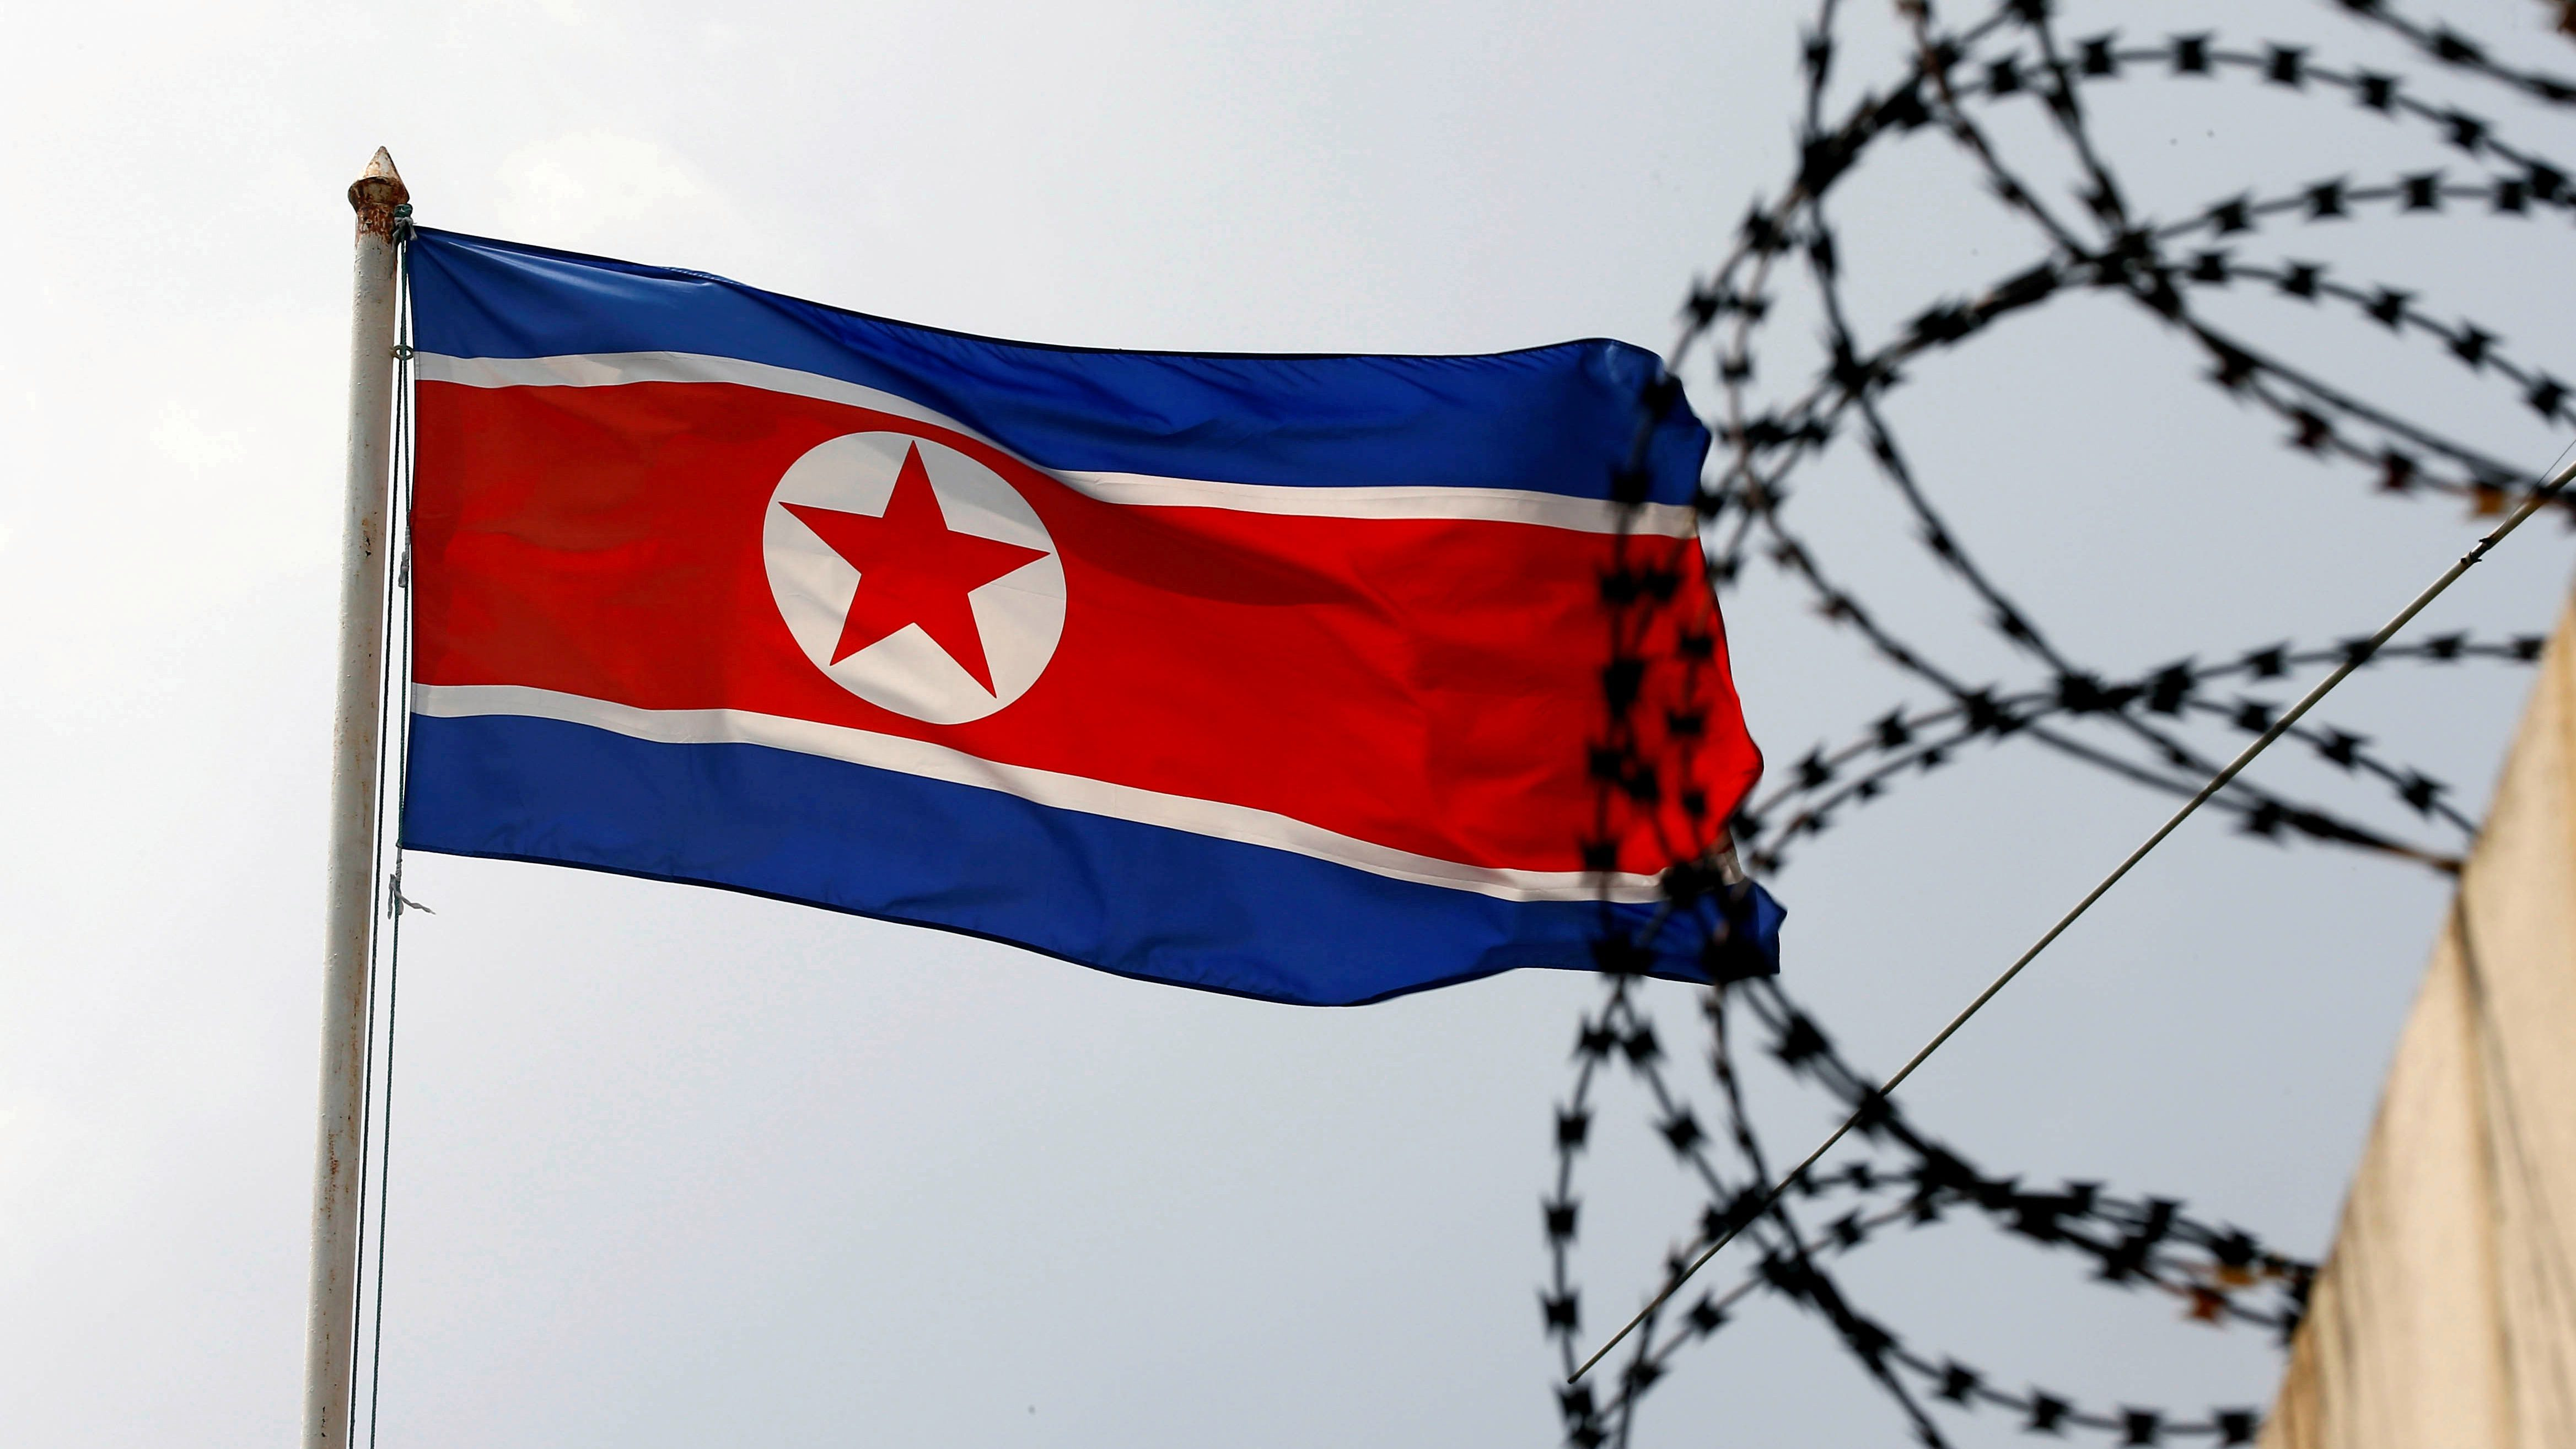 The North Korea flag flutters next to concertina wire at the North Korean embassy in Kuala Lumpur, Malaysia March 9, 2017.